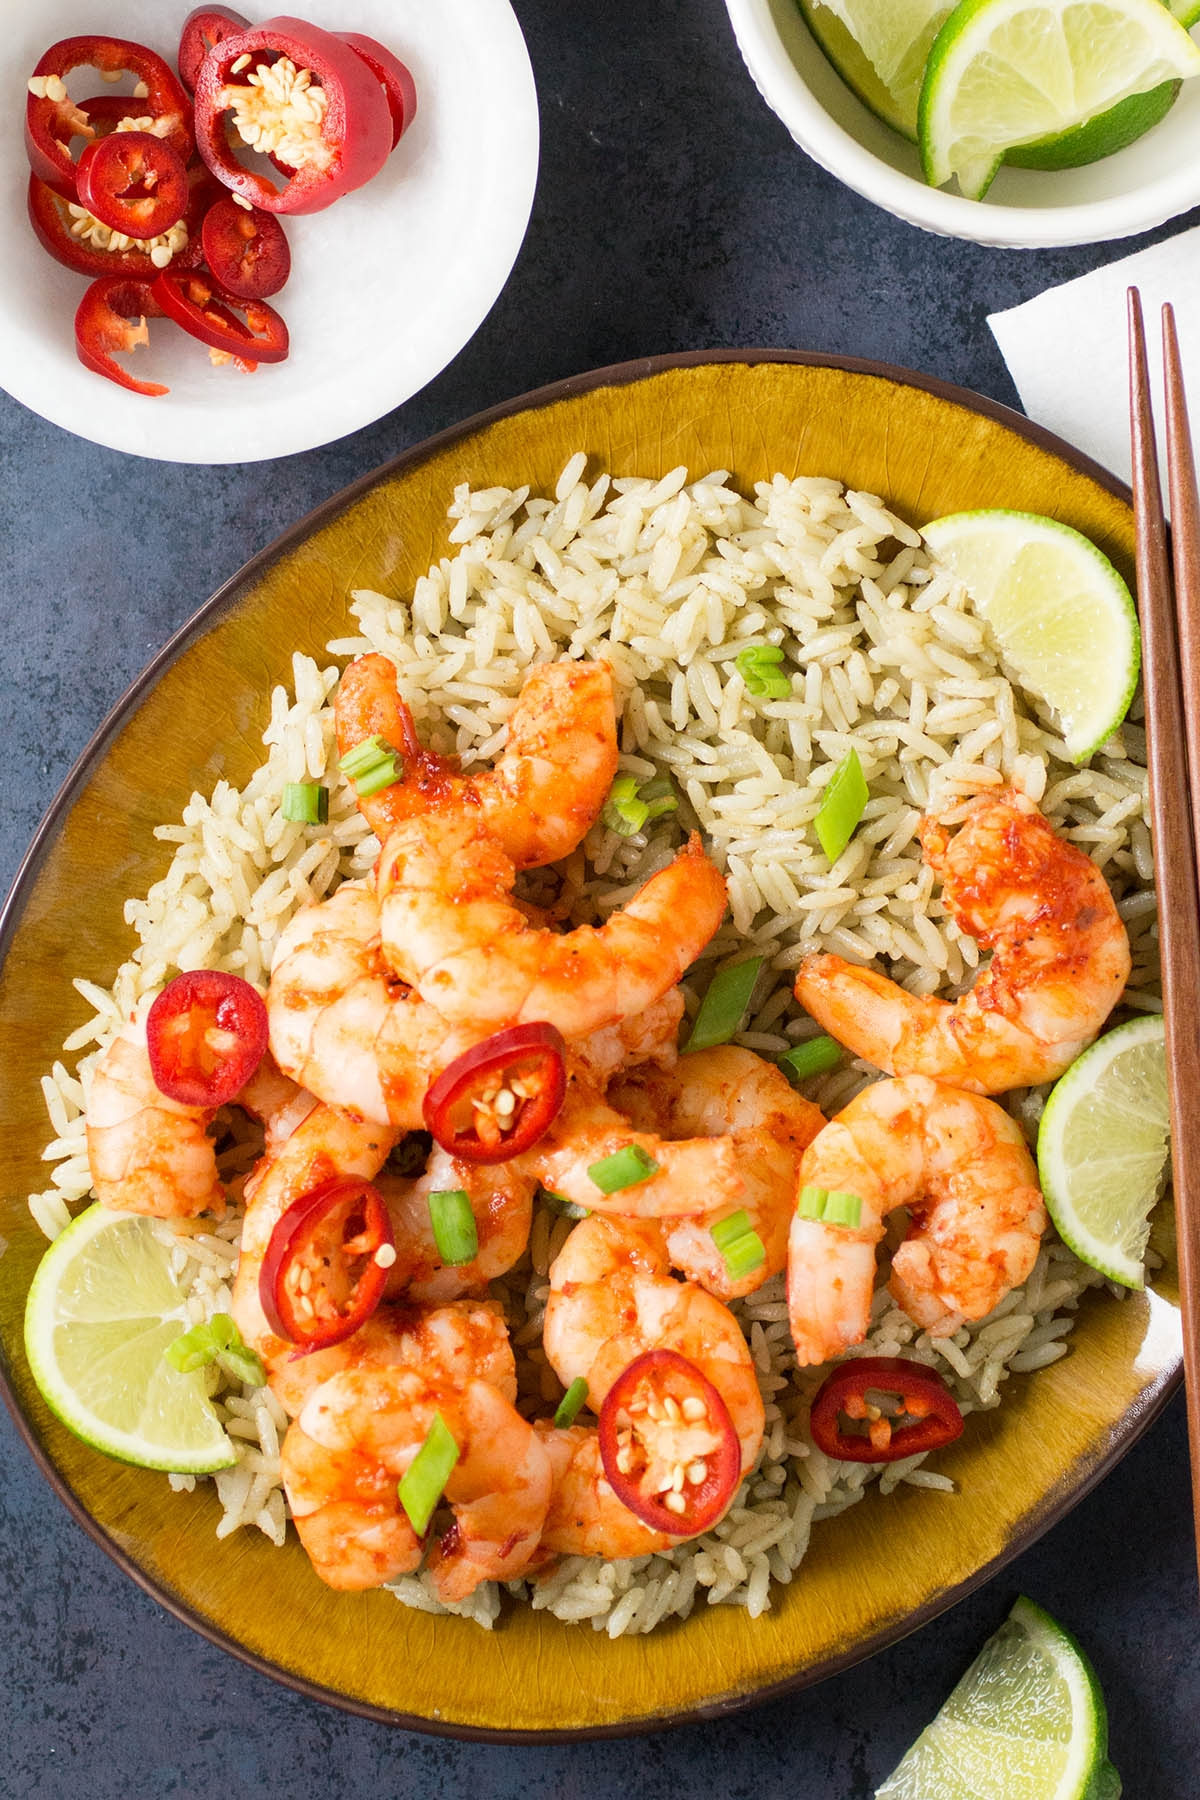 Chili-Garlic Shrimp with Thai Lime Rice